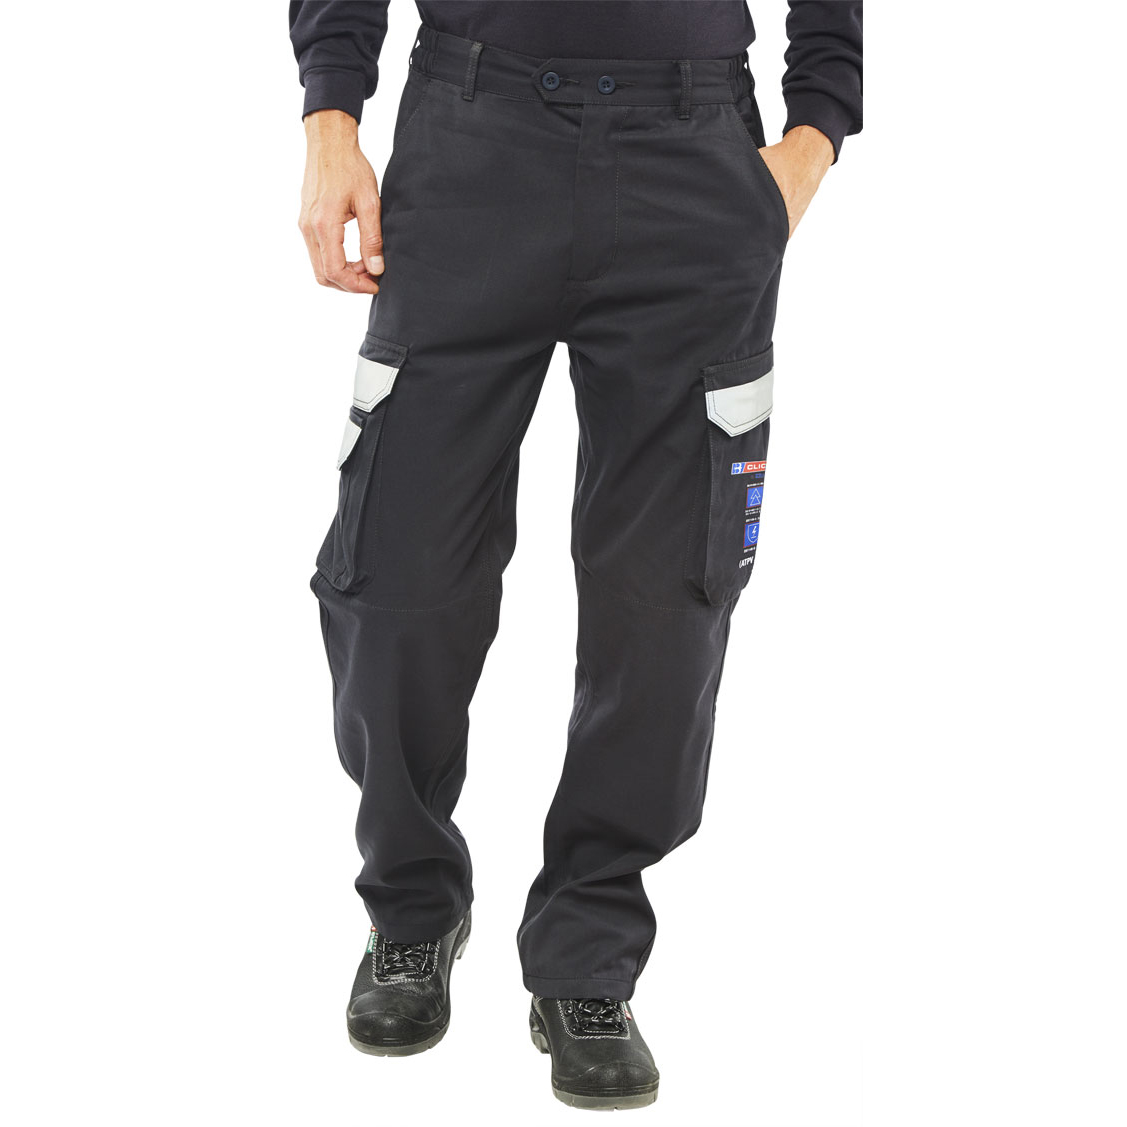 Fire Retardant / Flame Resistant Click Arc Flash Trousers Fire Retardant Navy Blue 42-Short Ref CARC4N42S *Up to 3 Day Leadtime*